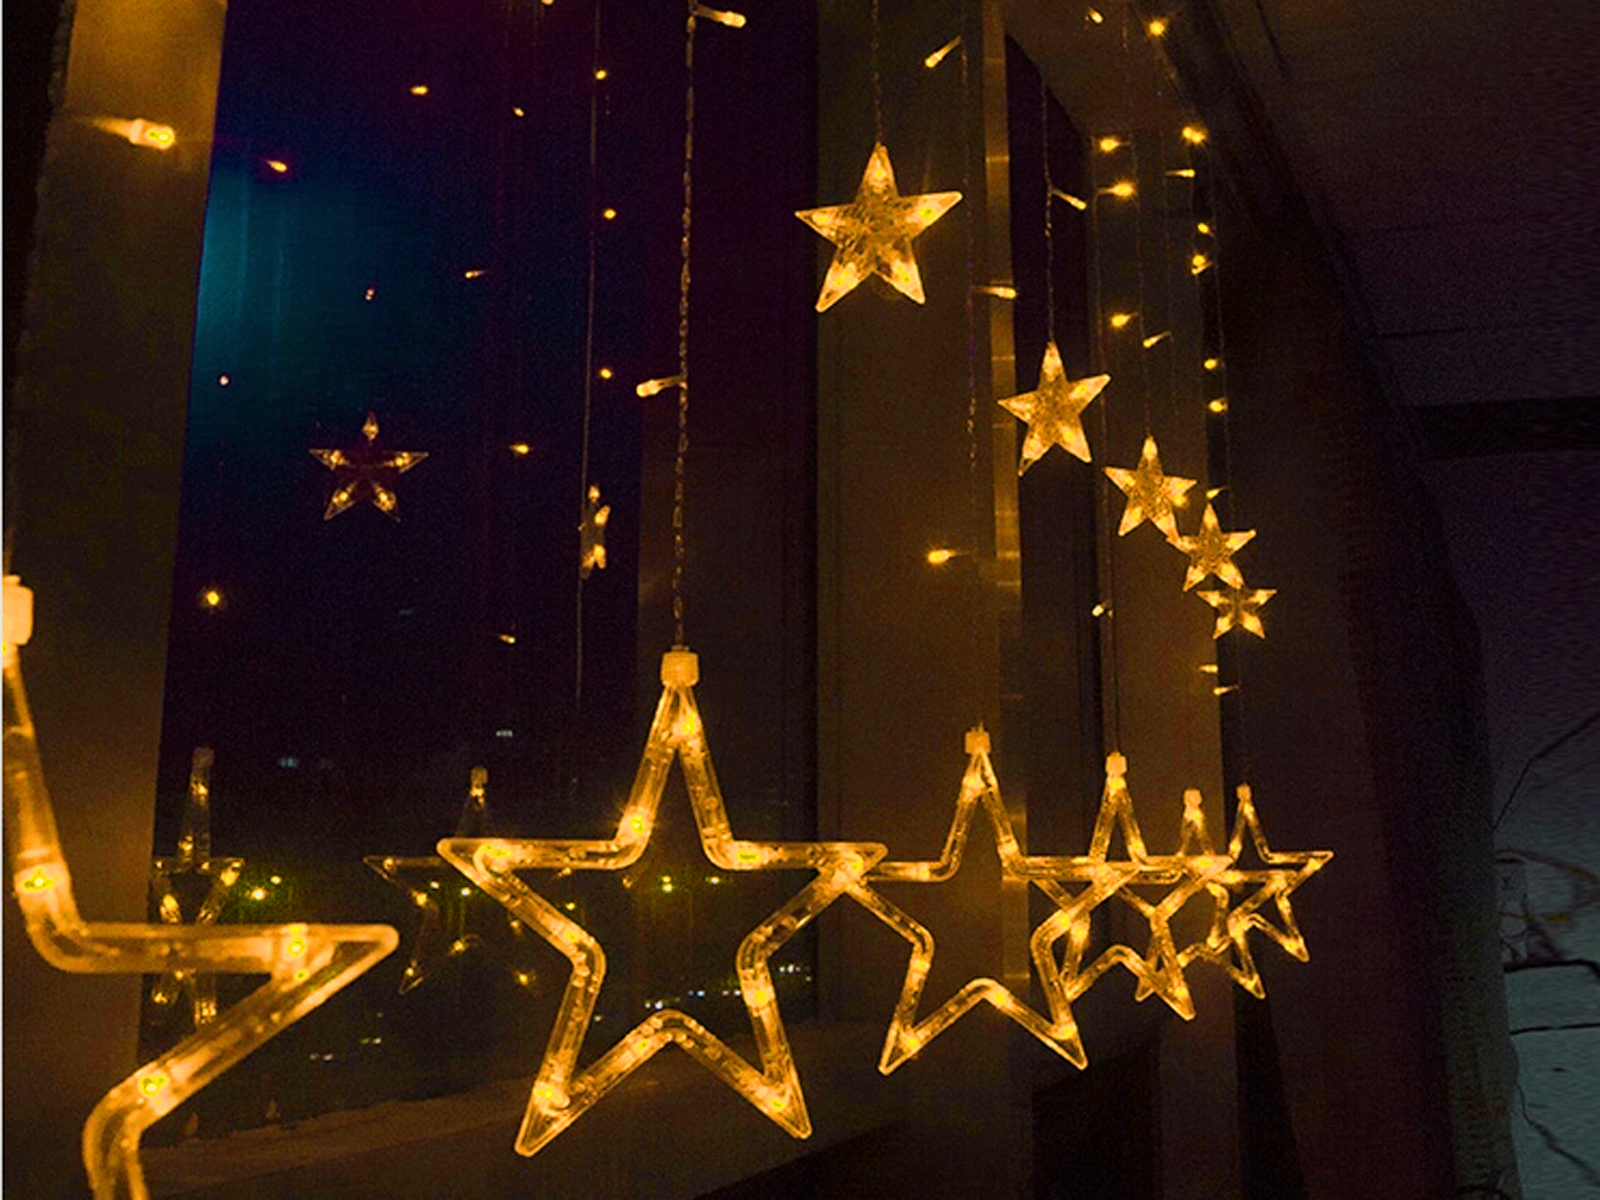 2M Stars LED String Fairy Light Christmas Xmas Party Wedding Decor 220-240V eBay